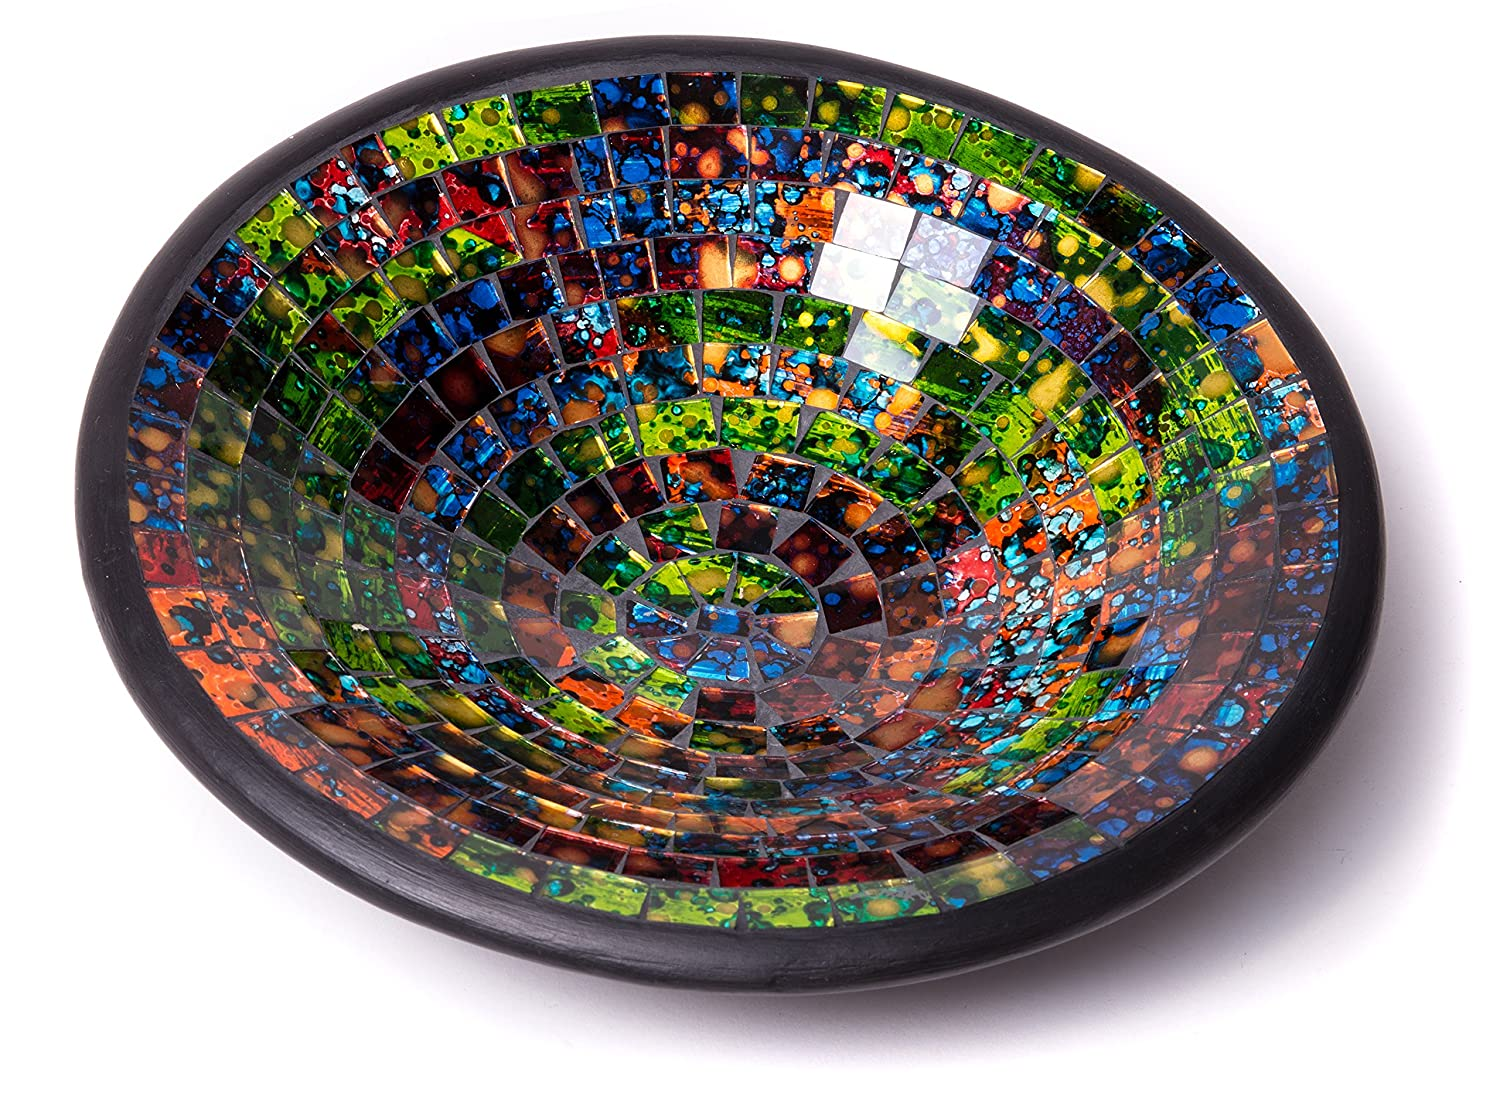 """Glass Mosaic Round Accent Plate Platter Decorative Catch-All Tray Dish Centerpiece Bowl - 11"""" with Green, Orange, Blue, Black, Brown Colors for Living Room, Bedroom, Hallway Console Side Table Decor"""